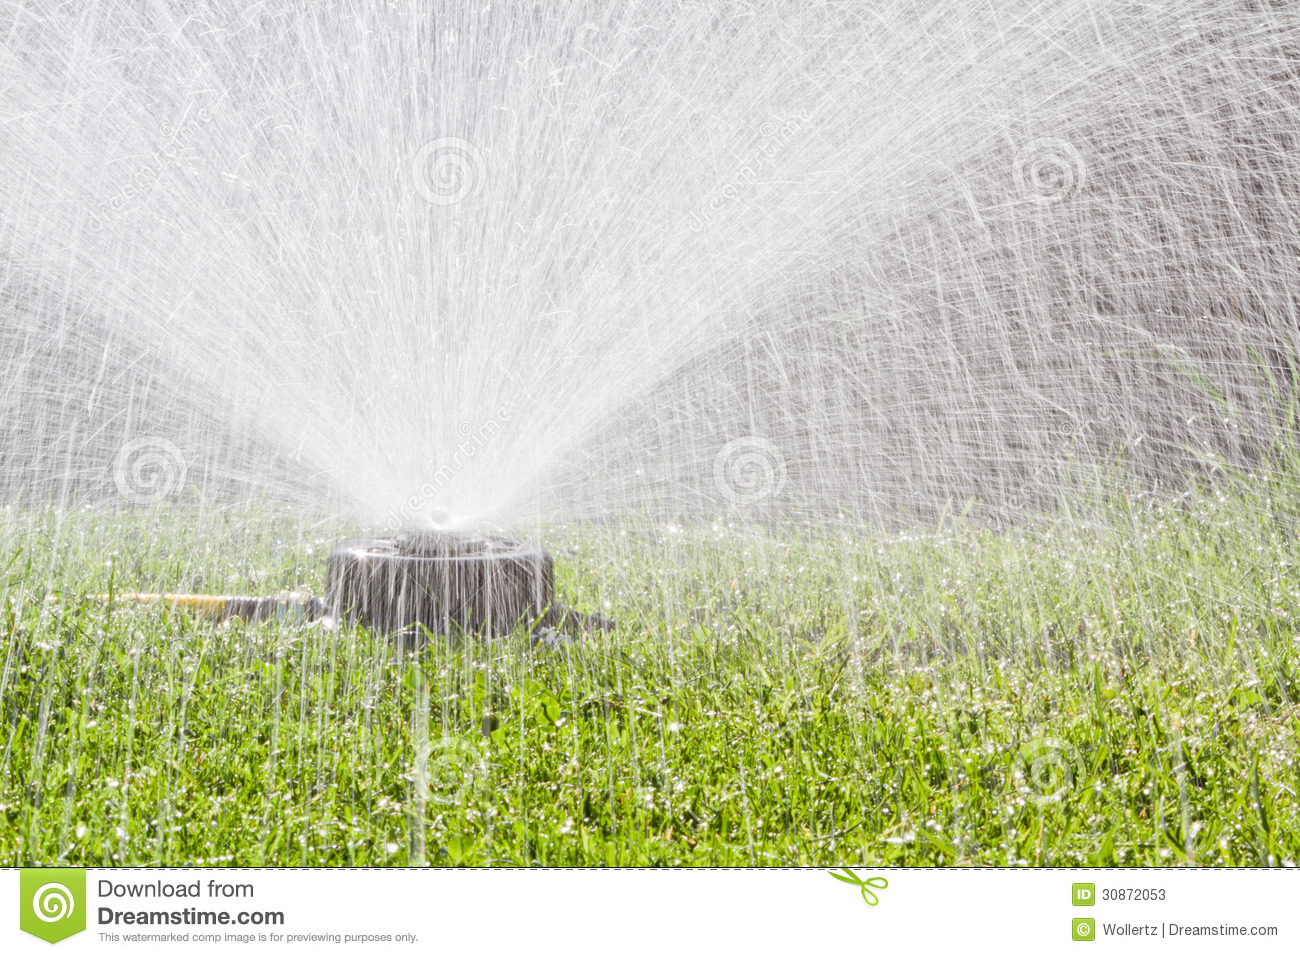 in the back yard with a yellow hose and a spray irrigation system